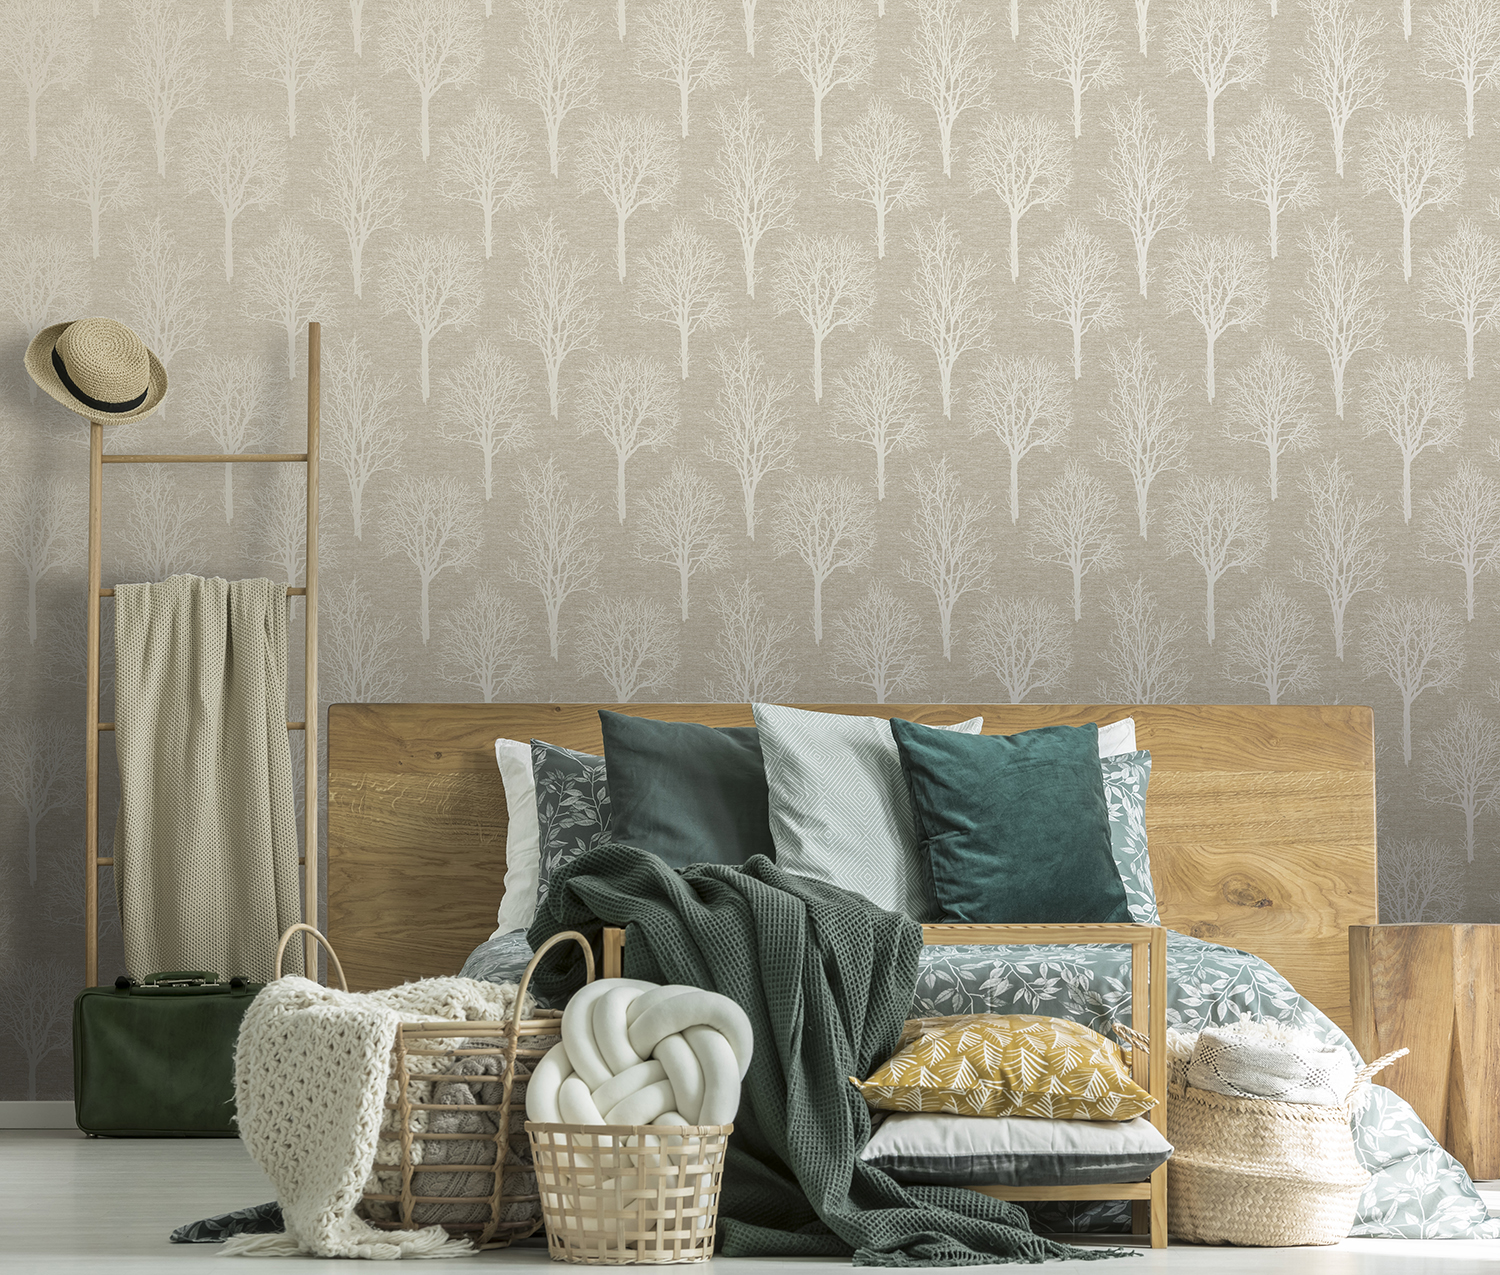 geometrics florals damasks from graham and brown eg everton glass in liverpool geometrics florals damasks from graham and brown eg everton glass in liverpool